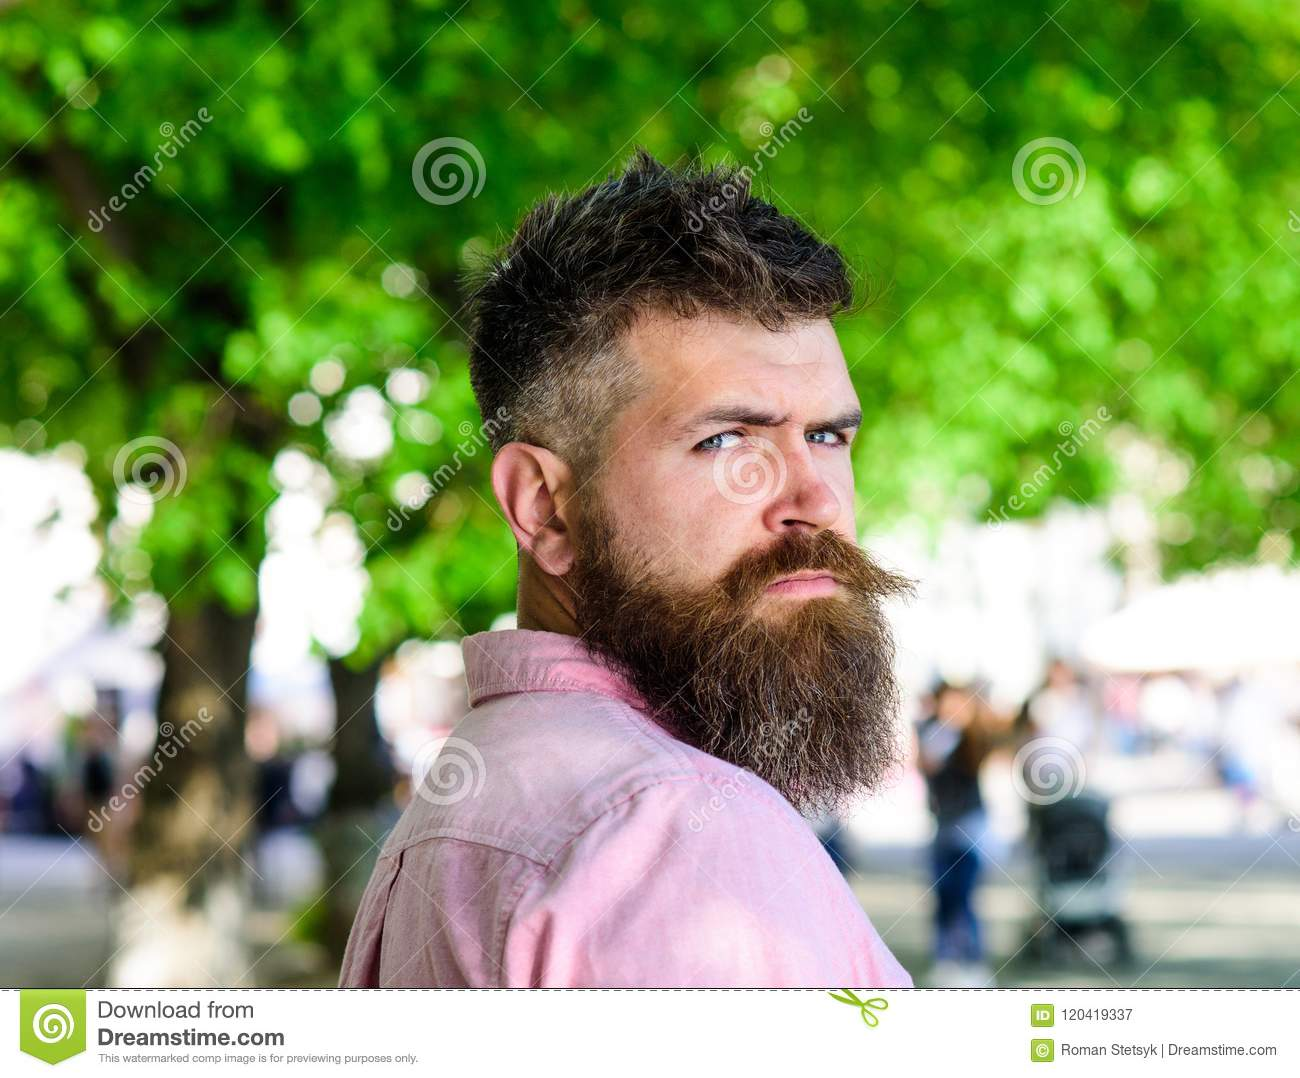 Man With Beard And Mustache On Strict Face Looks Back While Walks In